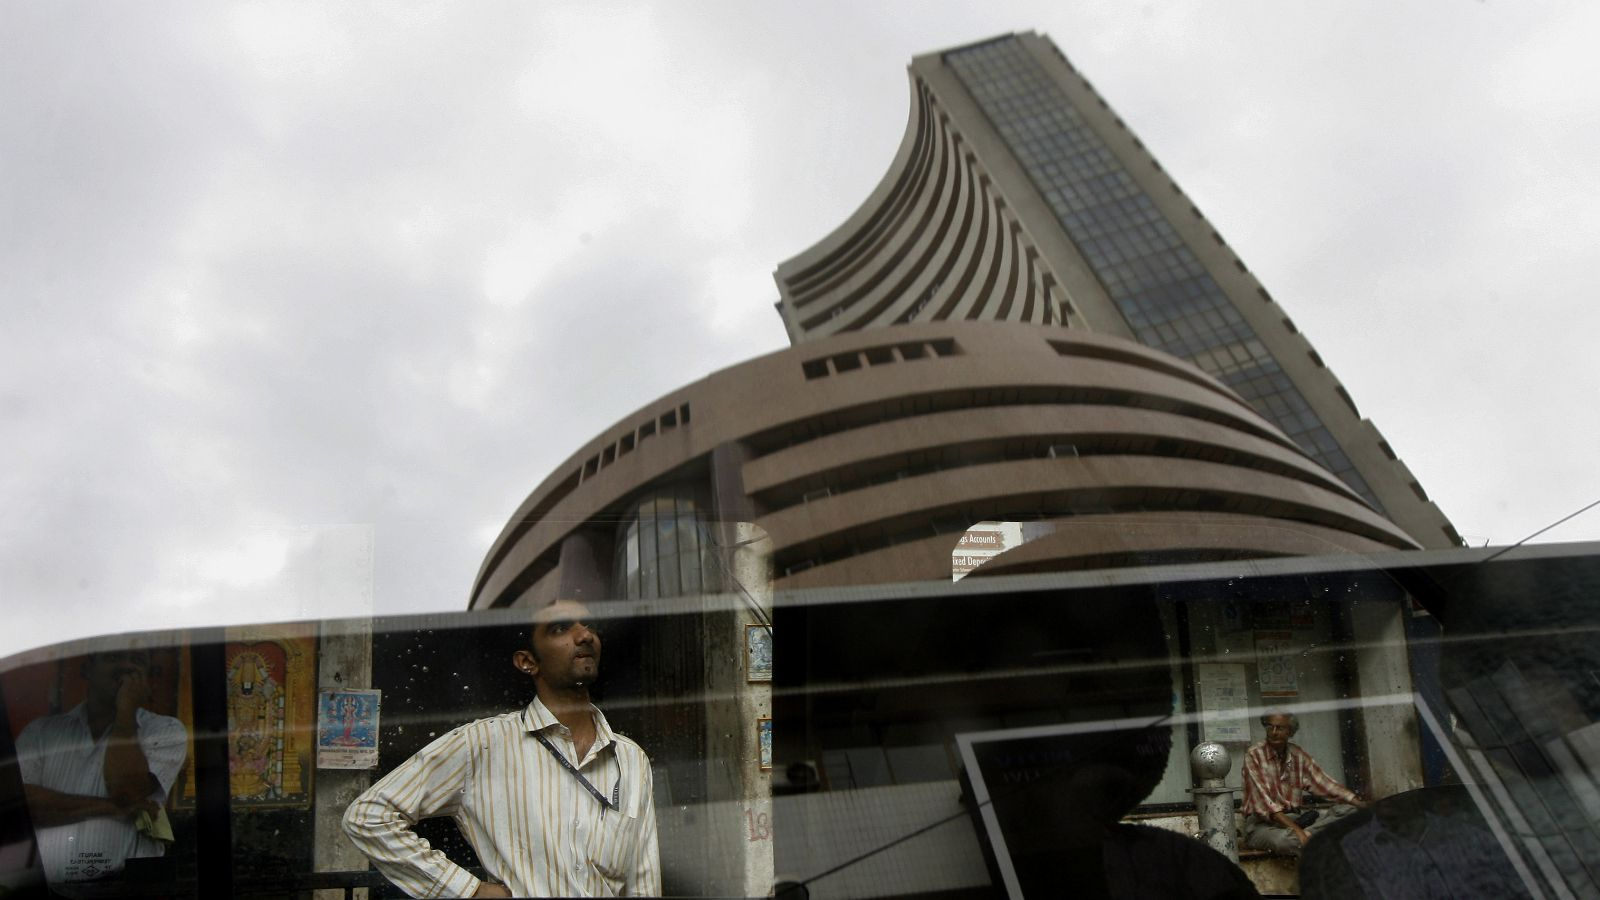 The Bombay Stock Exchange (BSE) building is reflected on a glass window as people look at a large screen displaying India's benchmark share index on the facade of the building in Mumbai July 2, 2008. Beaten down Indian shares rose 5.4 percent on Wednesday, their biggest single-day gain in more than three months, as investors picked up bargains but analysts said high oil prices and political stability were concerns. The rebound was underpinned by gains in European shares and U.S. stock index futures that pointed to a rise on Wall Street, and hectic short covering after the market had slid more than 10 percent in the previous three sessions.